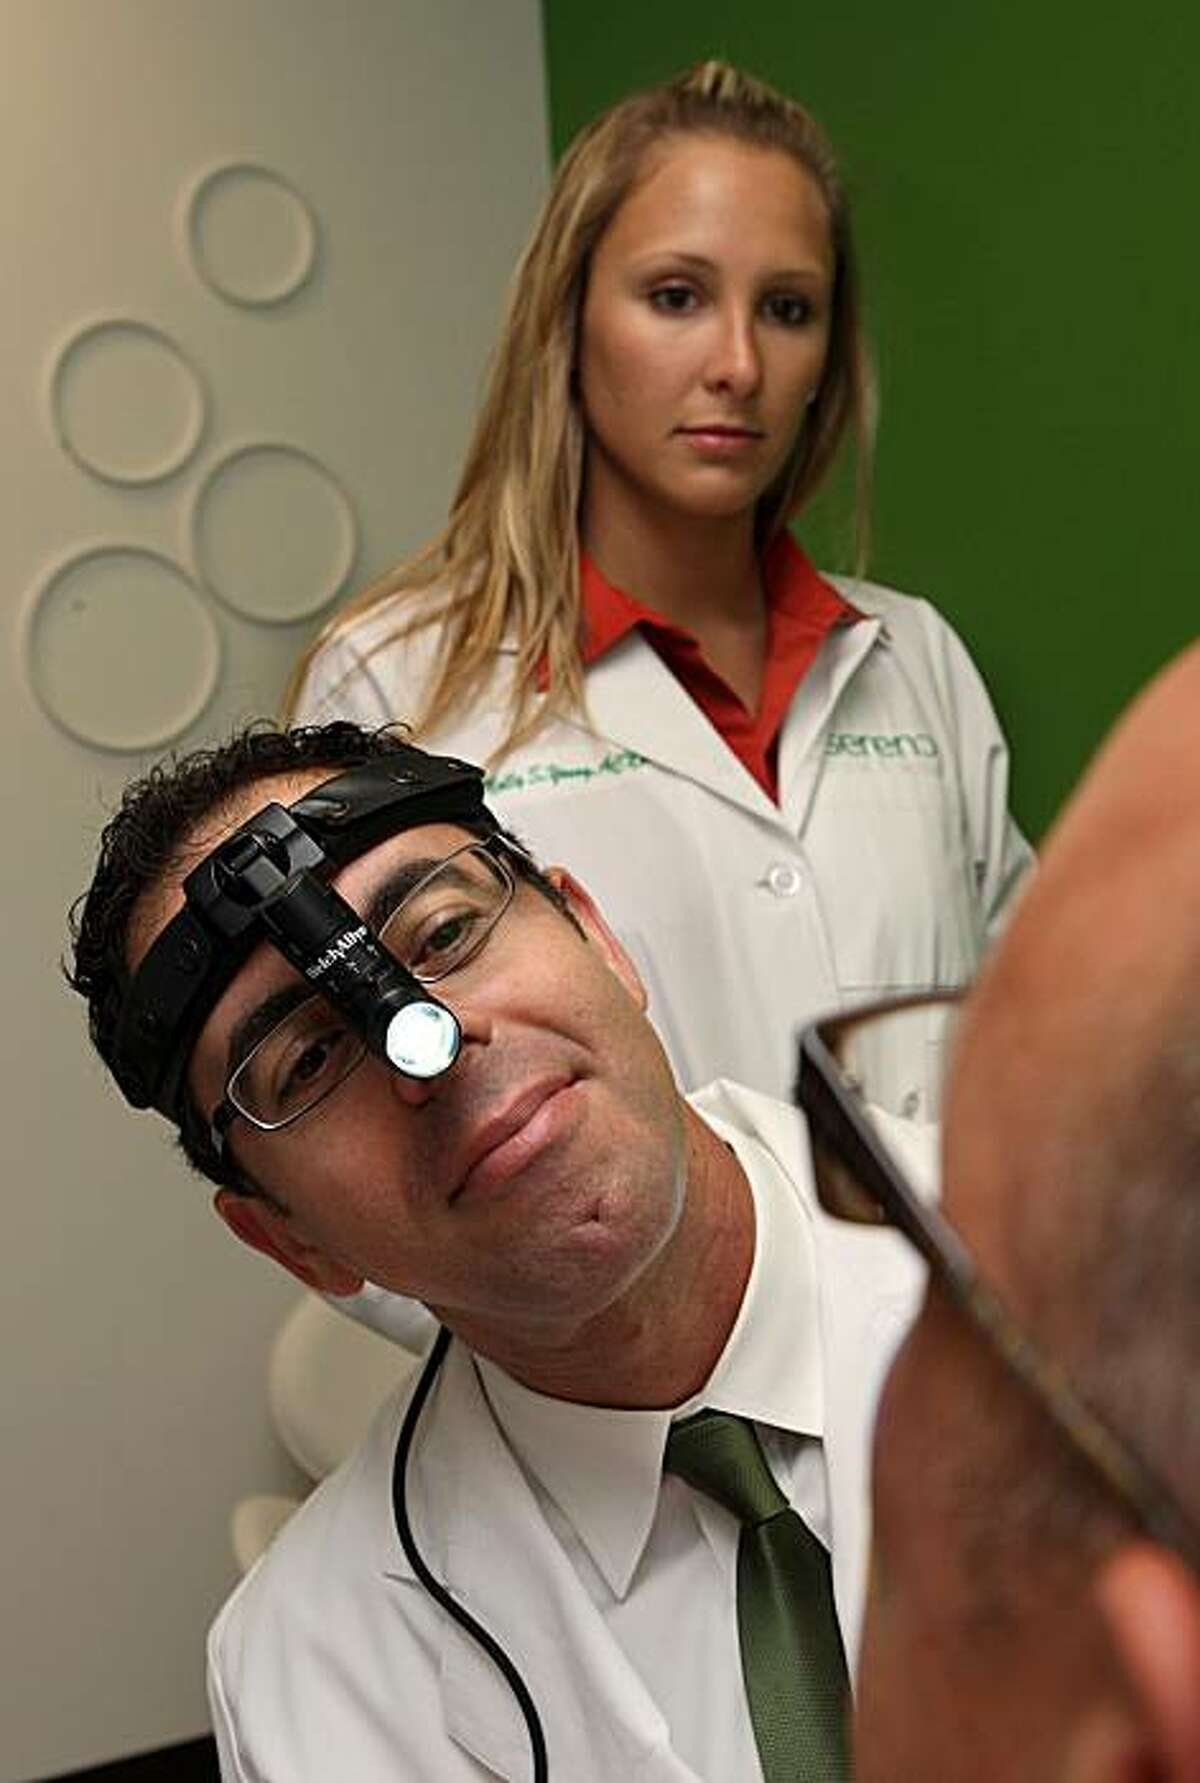 Dr. Matthew Mingrone, the medical director at Sereno, and nurse practioner Molly Young in the examination room in San Francisco, Calif., on Friday, July 16, 2010.